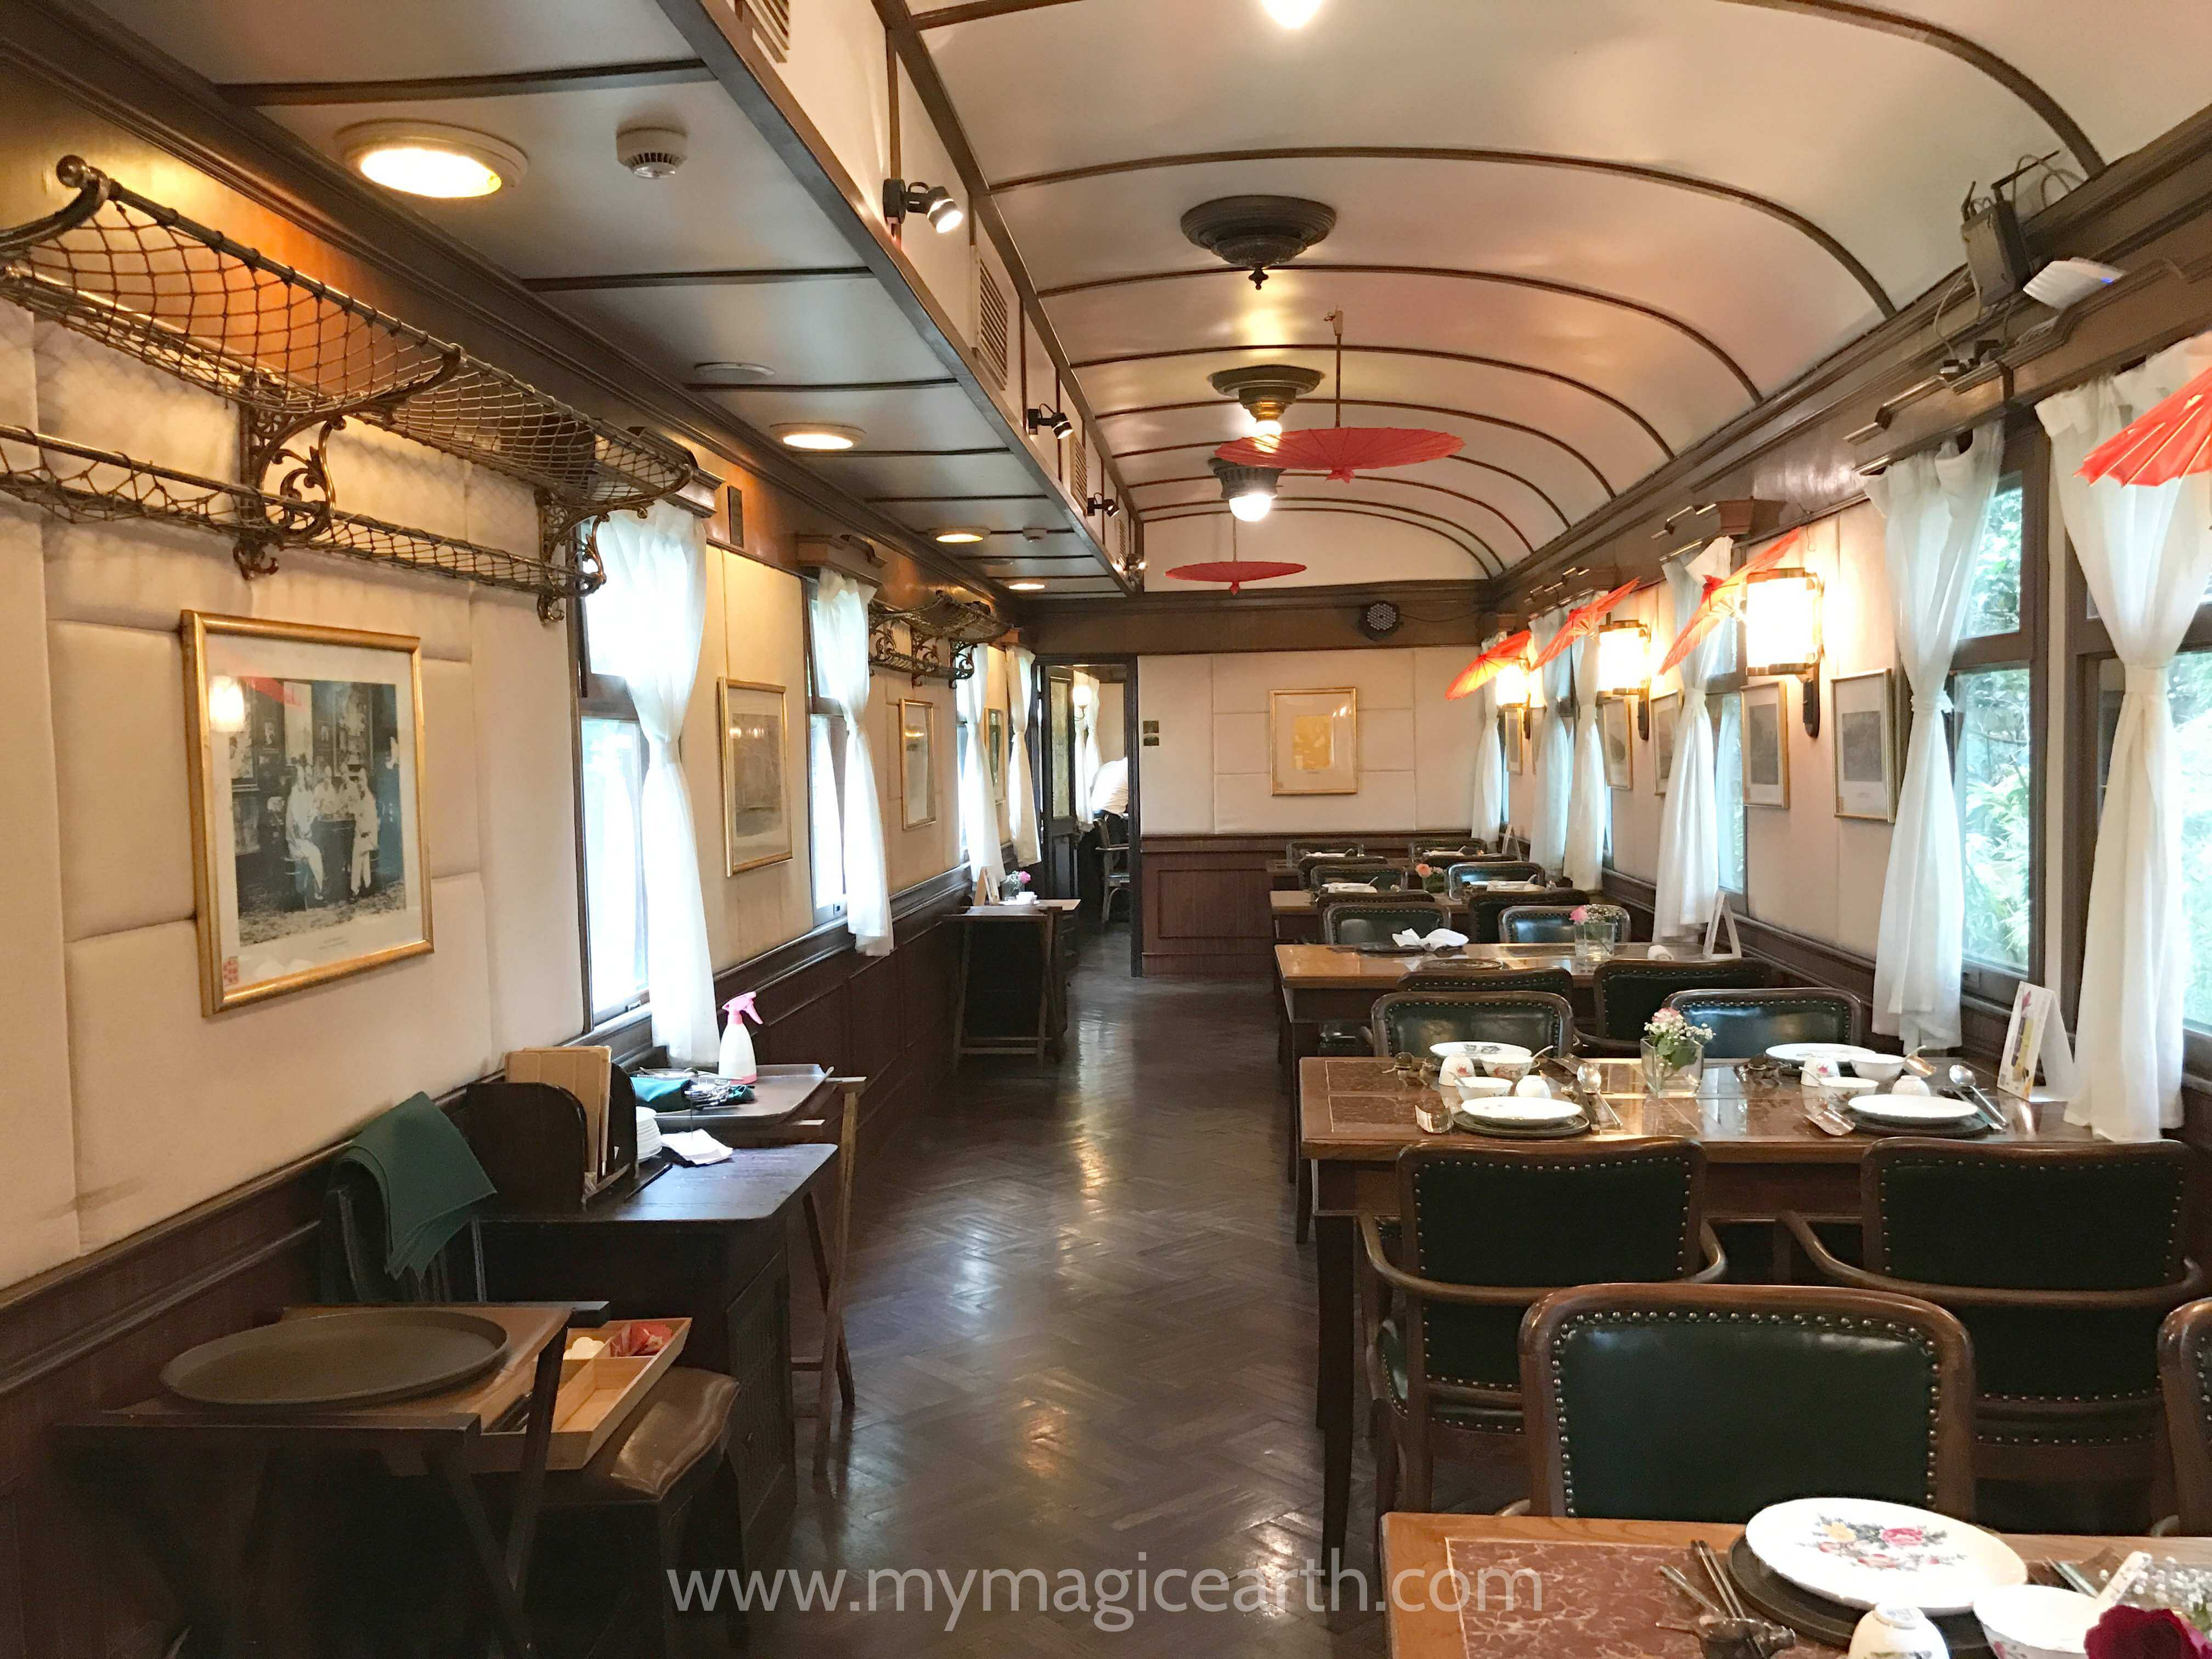 Seating tables of the restaurant inside the 97318 Official Car (97316 公务车) carriage